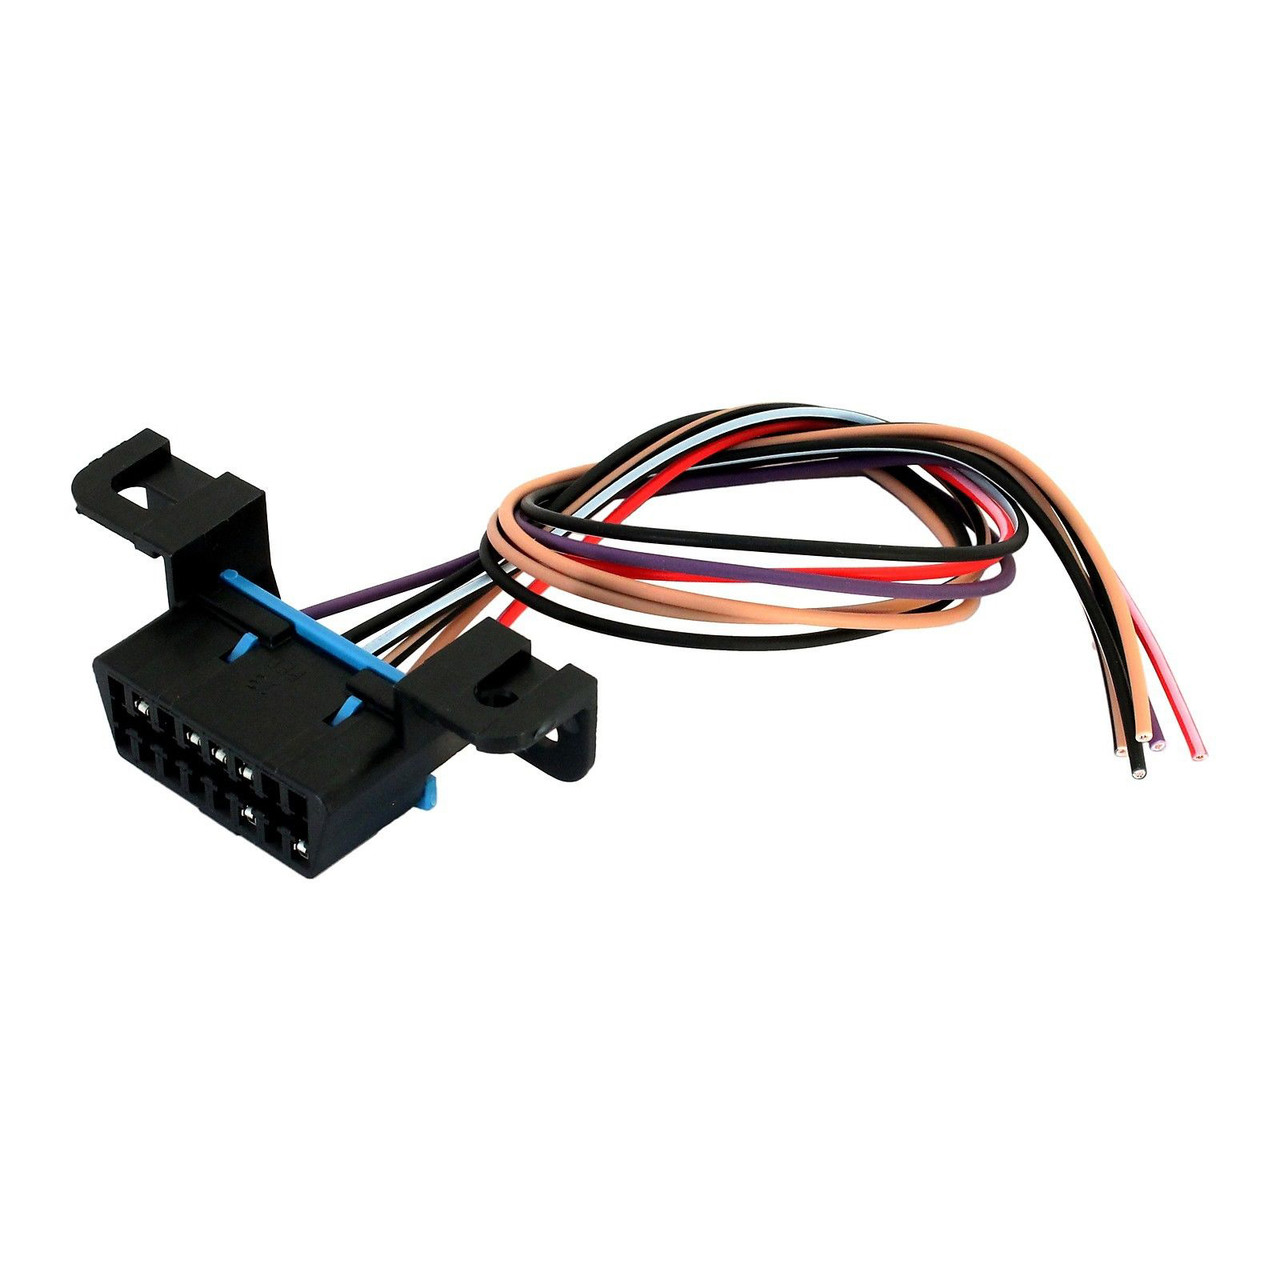 medium resolution of obdii obd2 j1962 class 2 can bus wiring harness connector pigtail16p conn dlc can pt f 10644